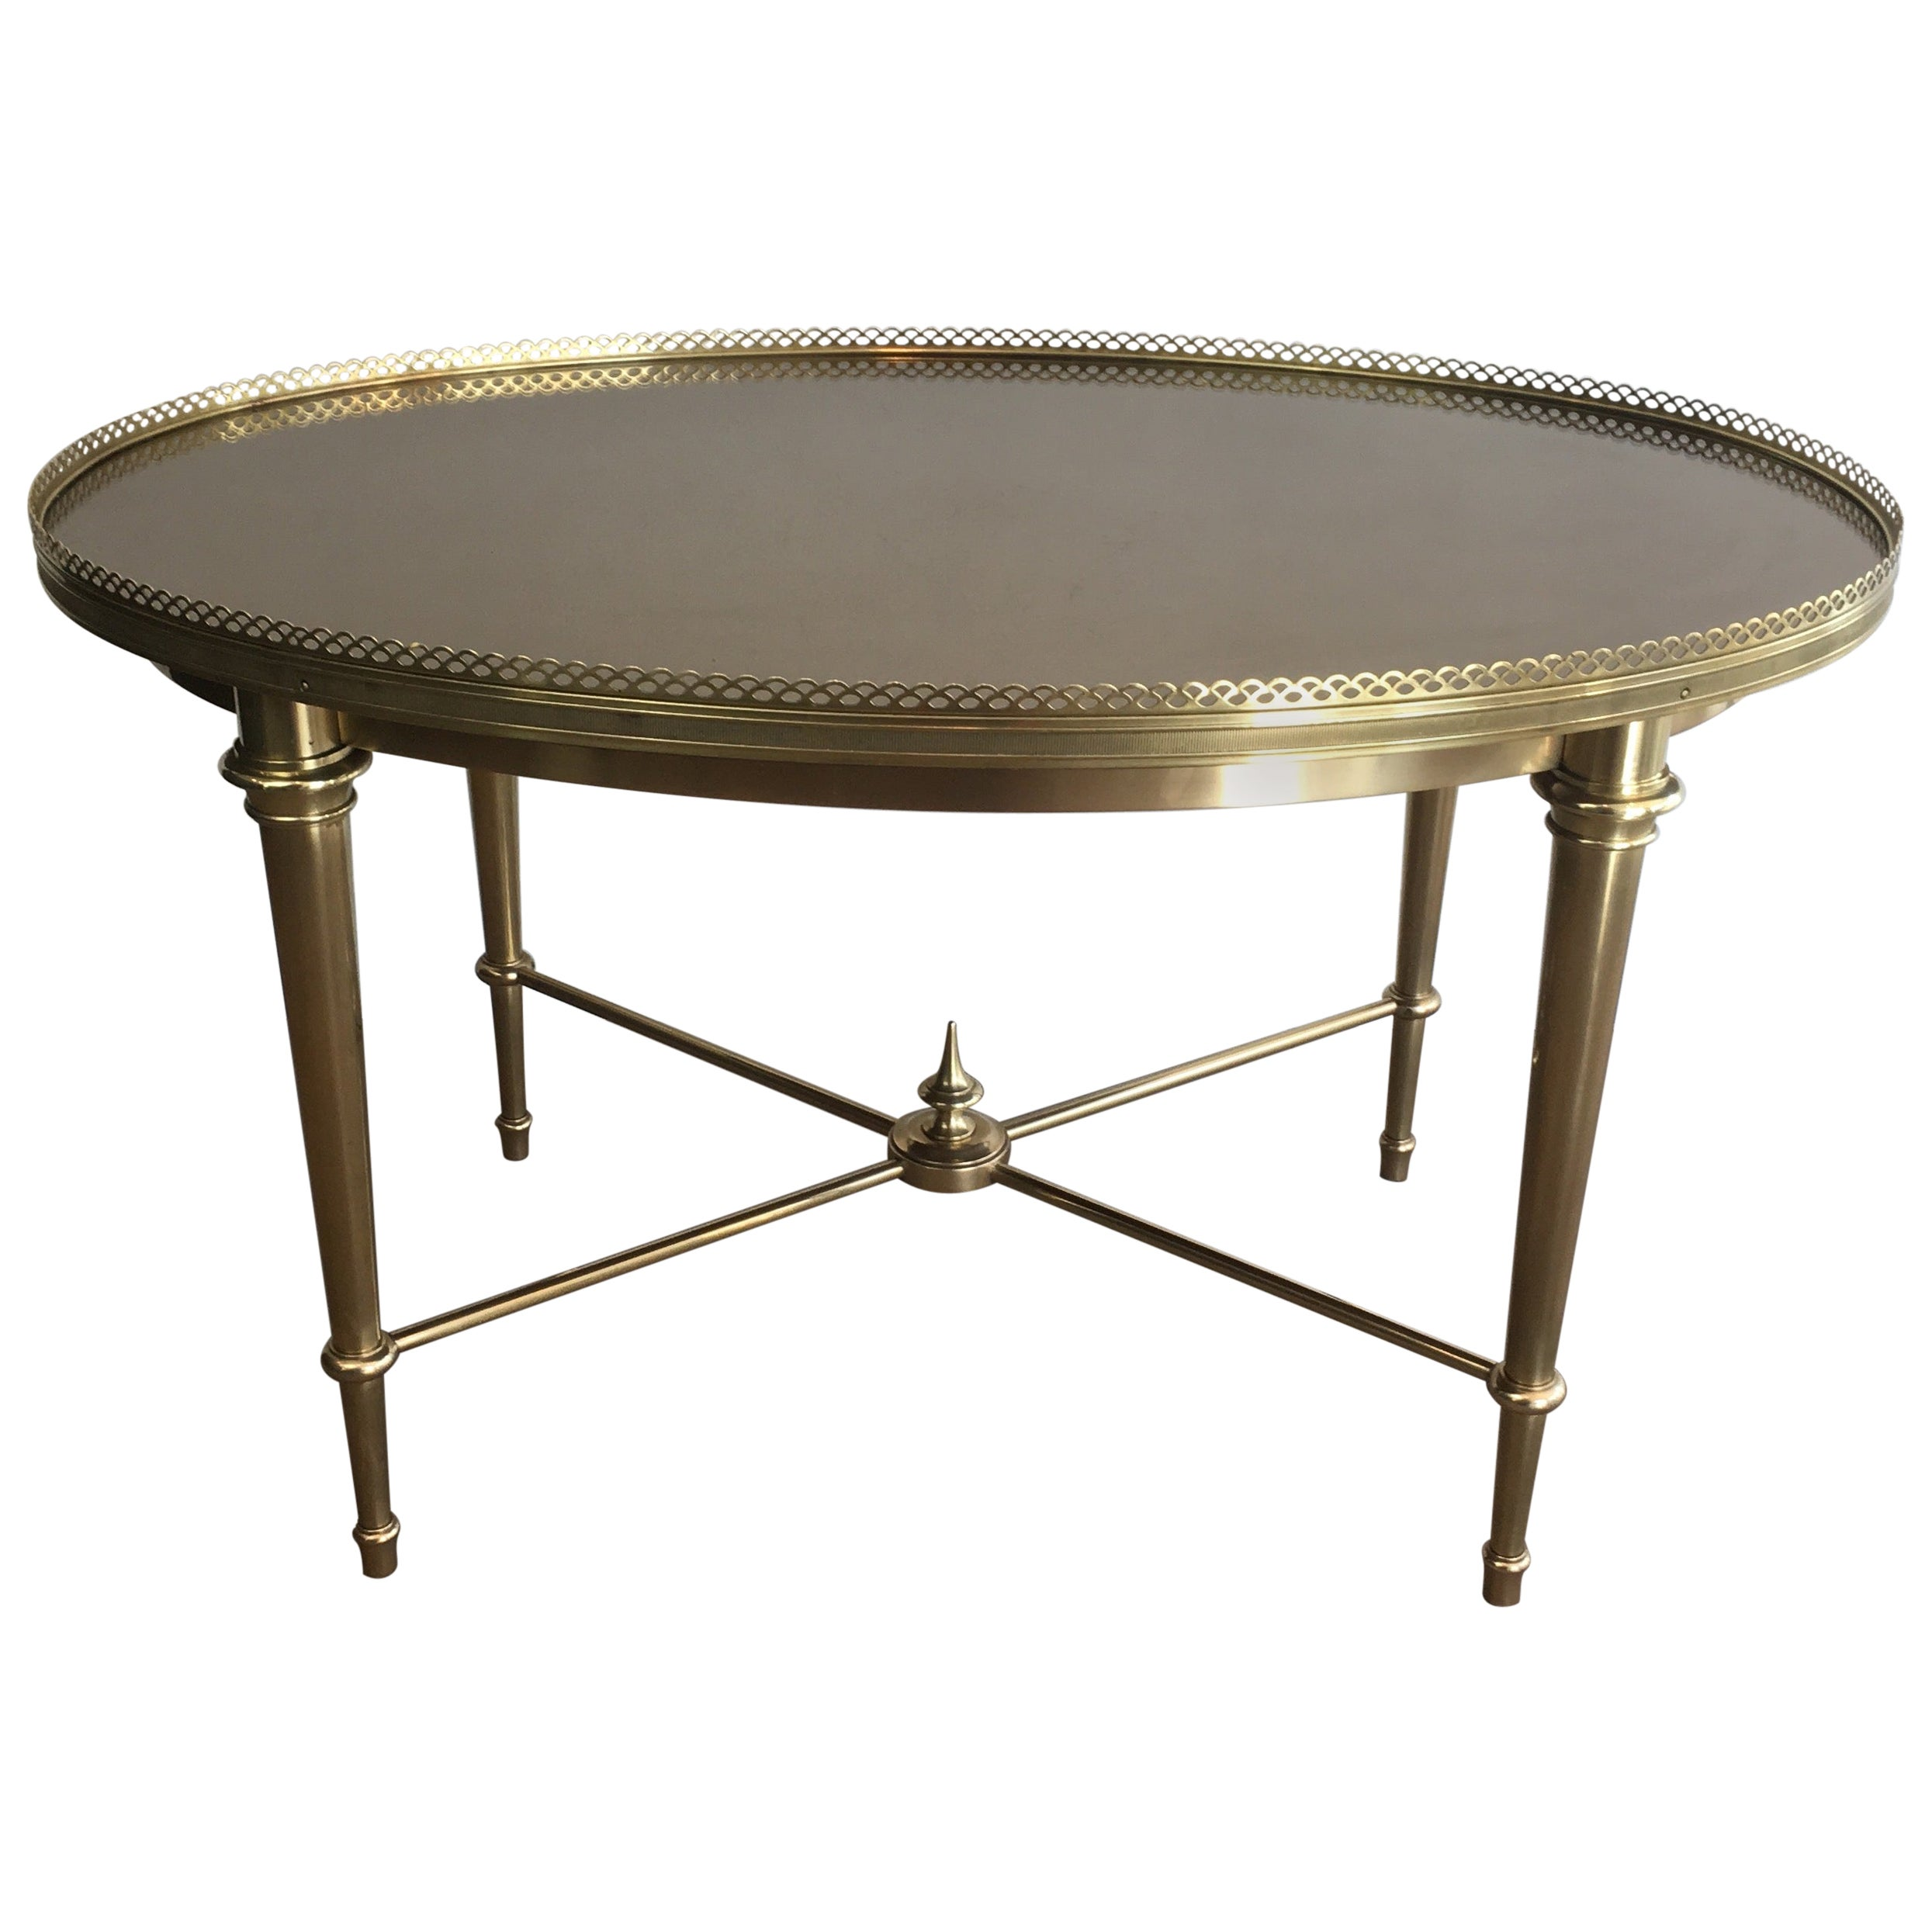 Attributed to Maison Ramsay, Neoclassical Style Oval Brass Coffee Table with Be